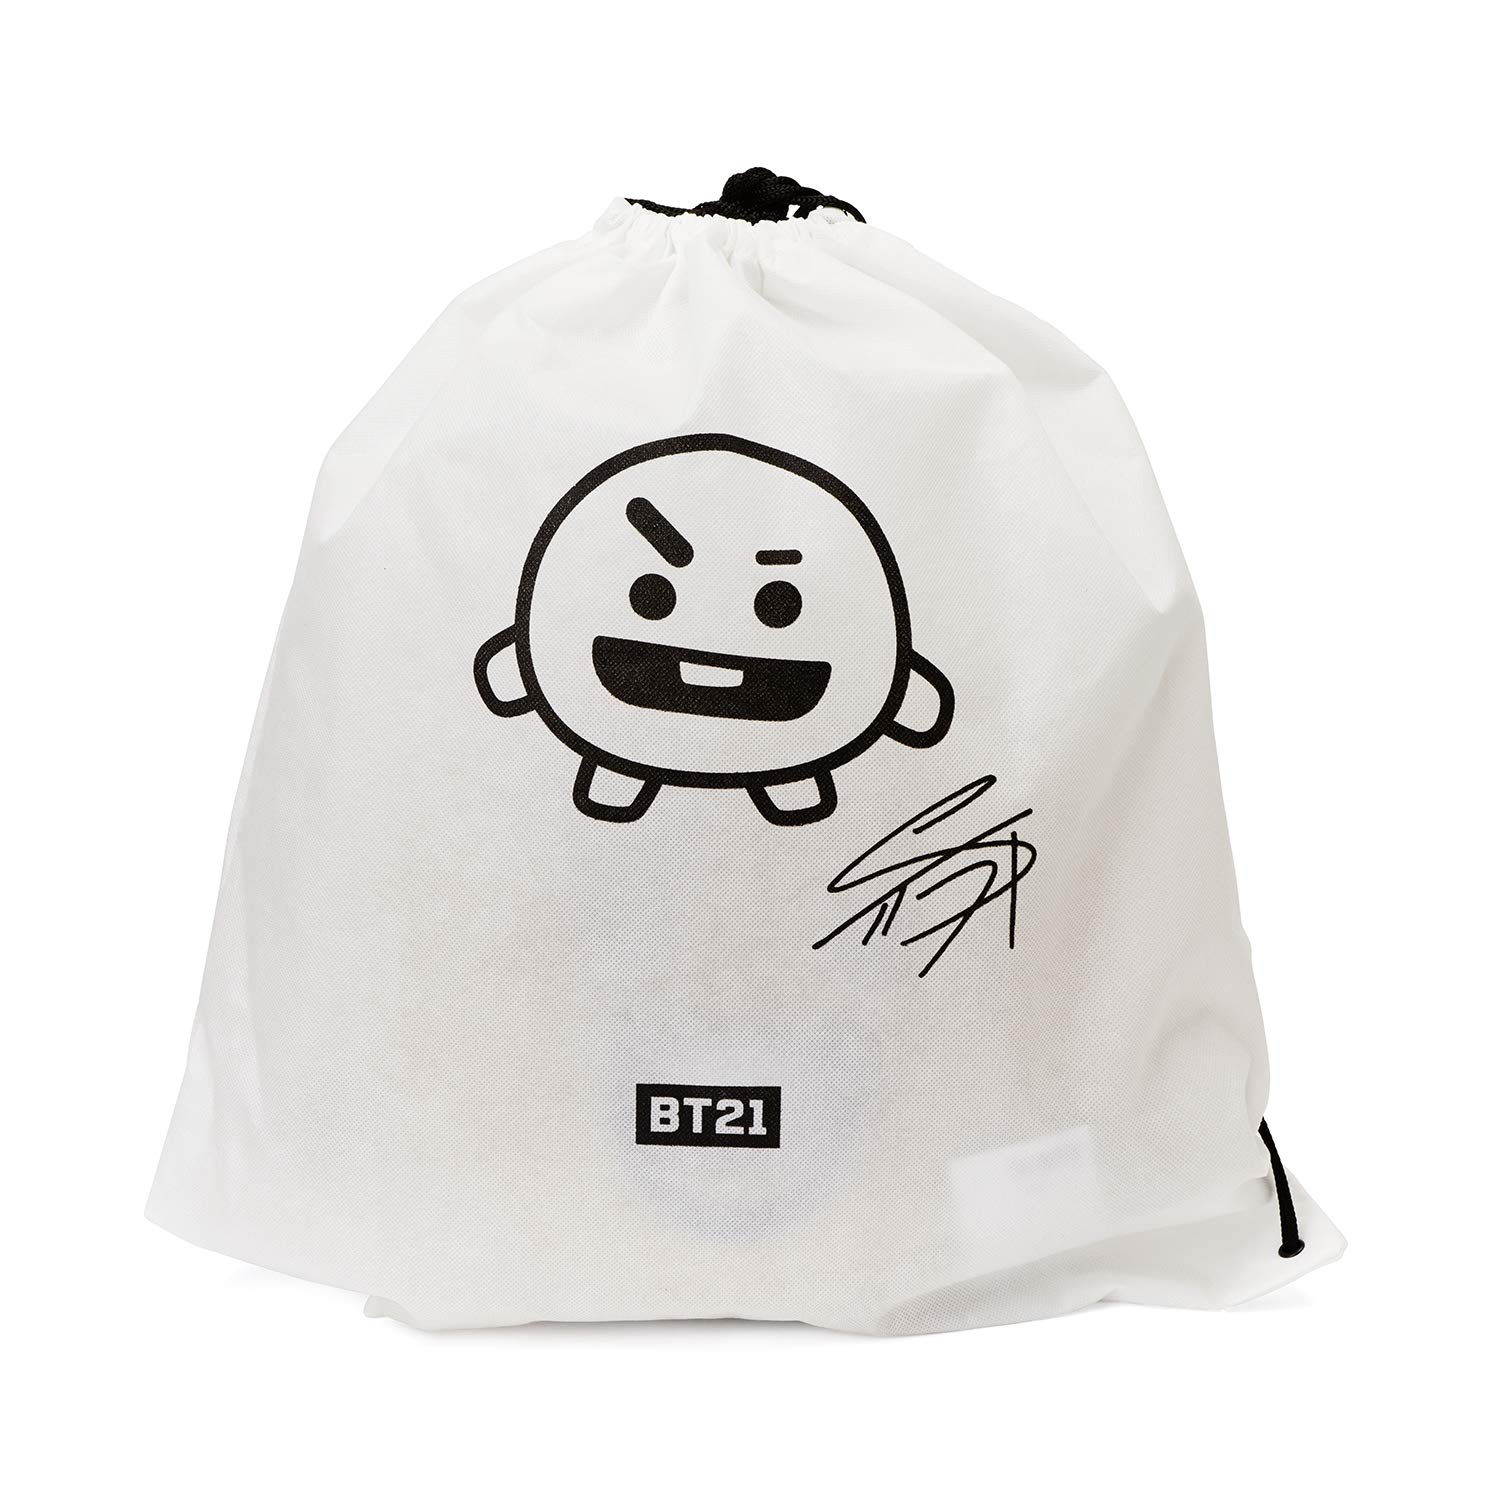 Cooky Smile Decorative Throw Pillows Cushion 16.5 Inch BT21 Official Merchandise by Line Friends